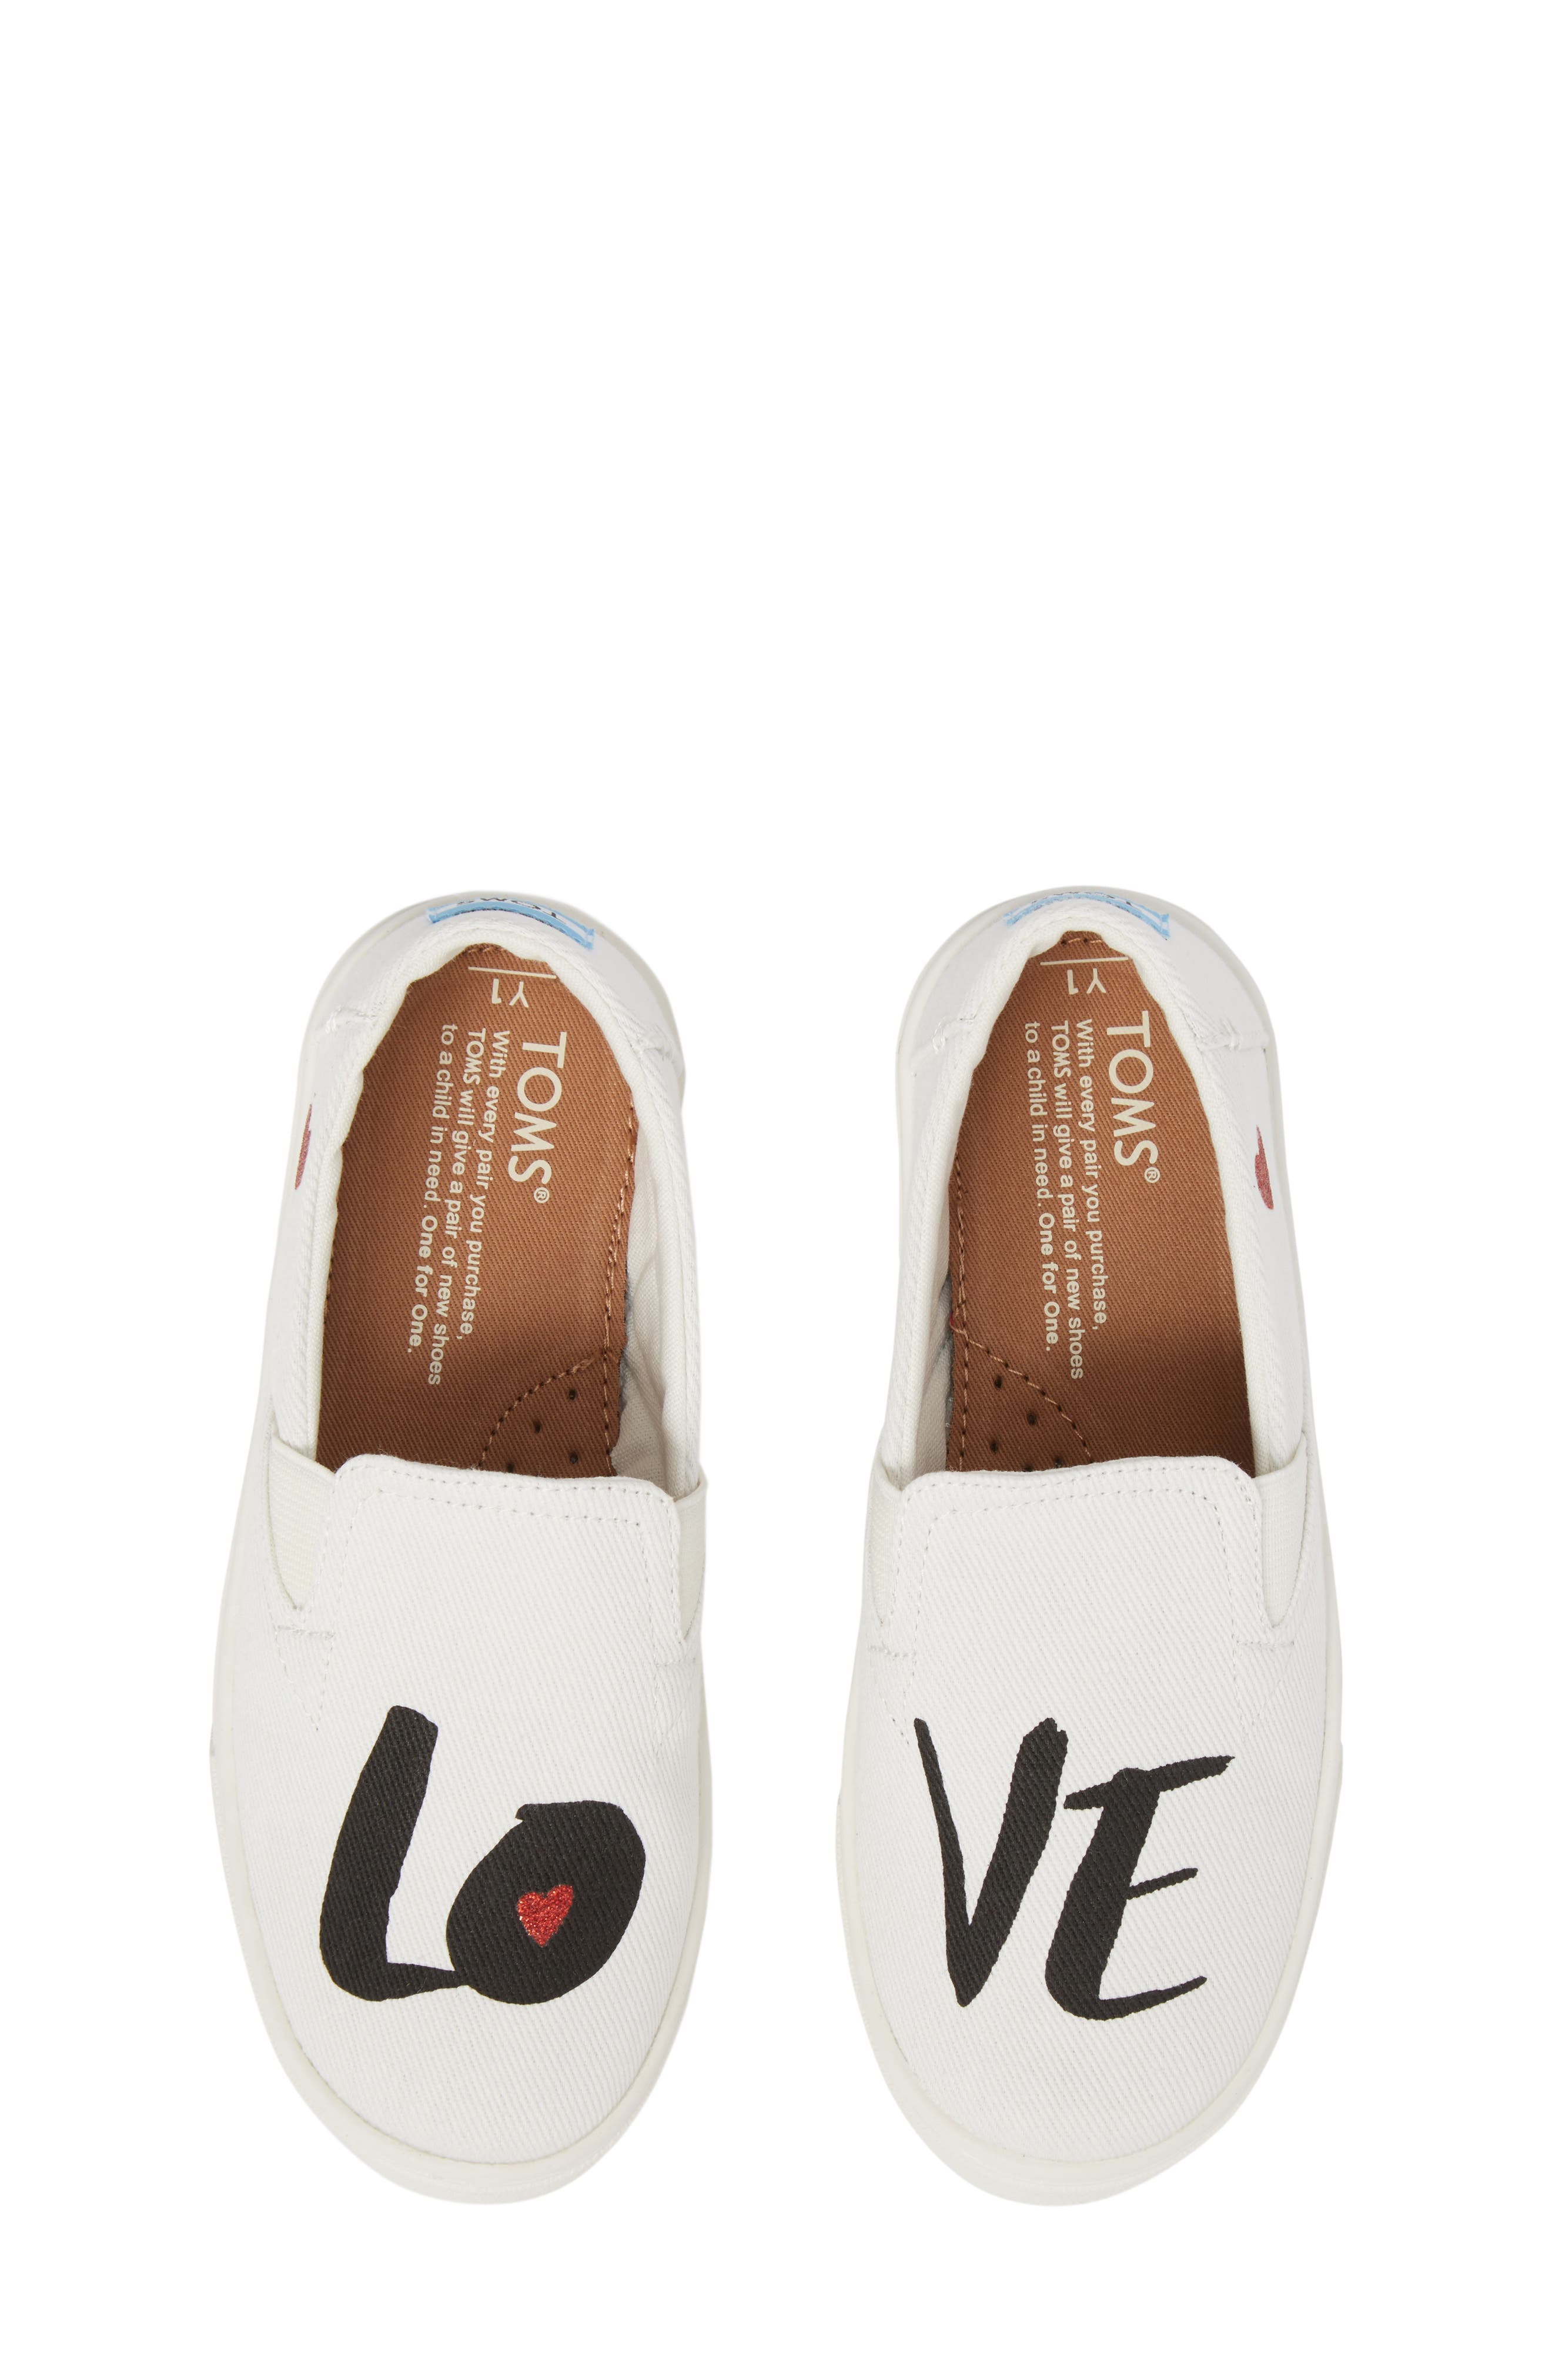 toms nordstrom walker cribs shoes all crib and boys baby c